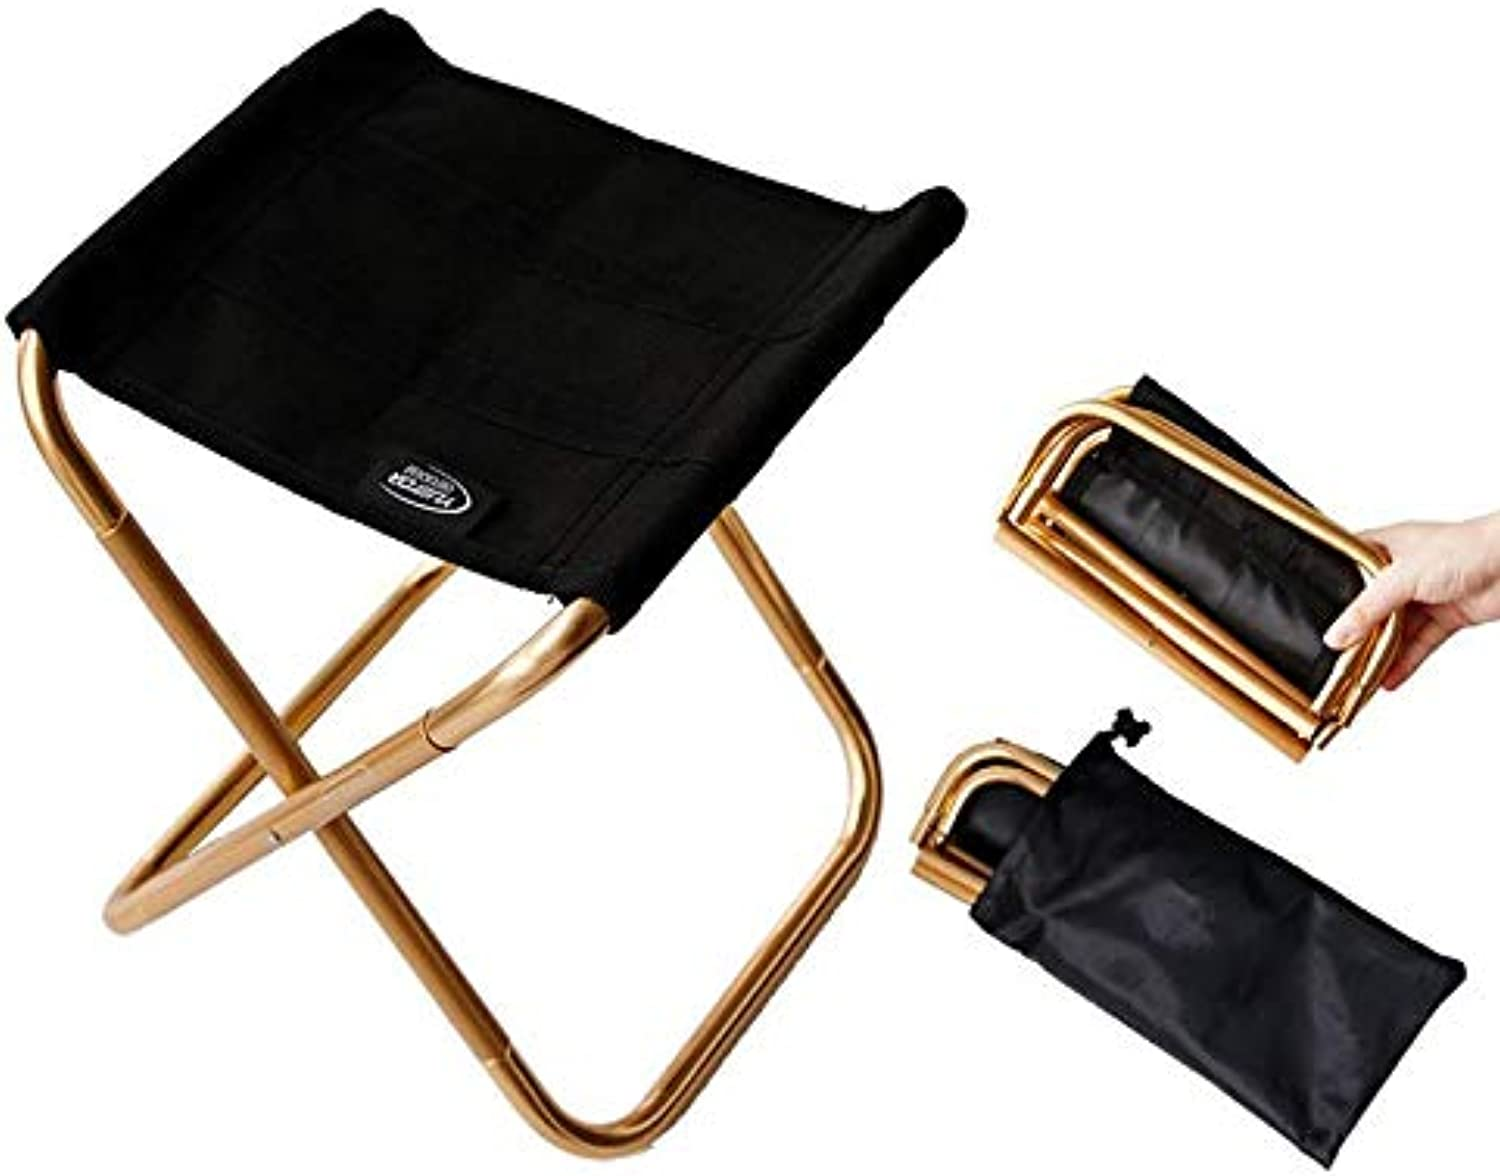 LFJXBF Folding Stool Portable Lightweight Aluminum Alloy Chair for Camping Fishing Travel and Other Outdoor Activities